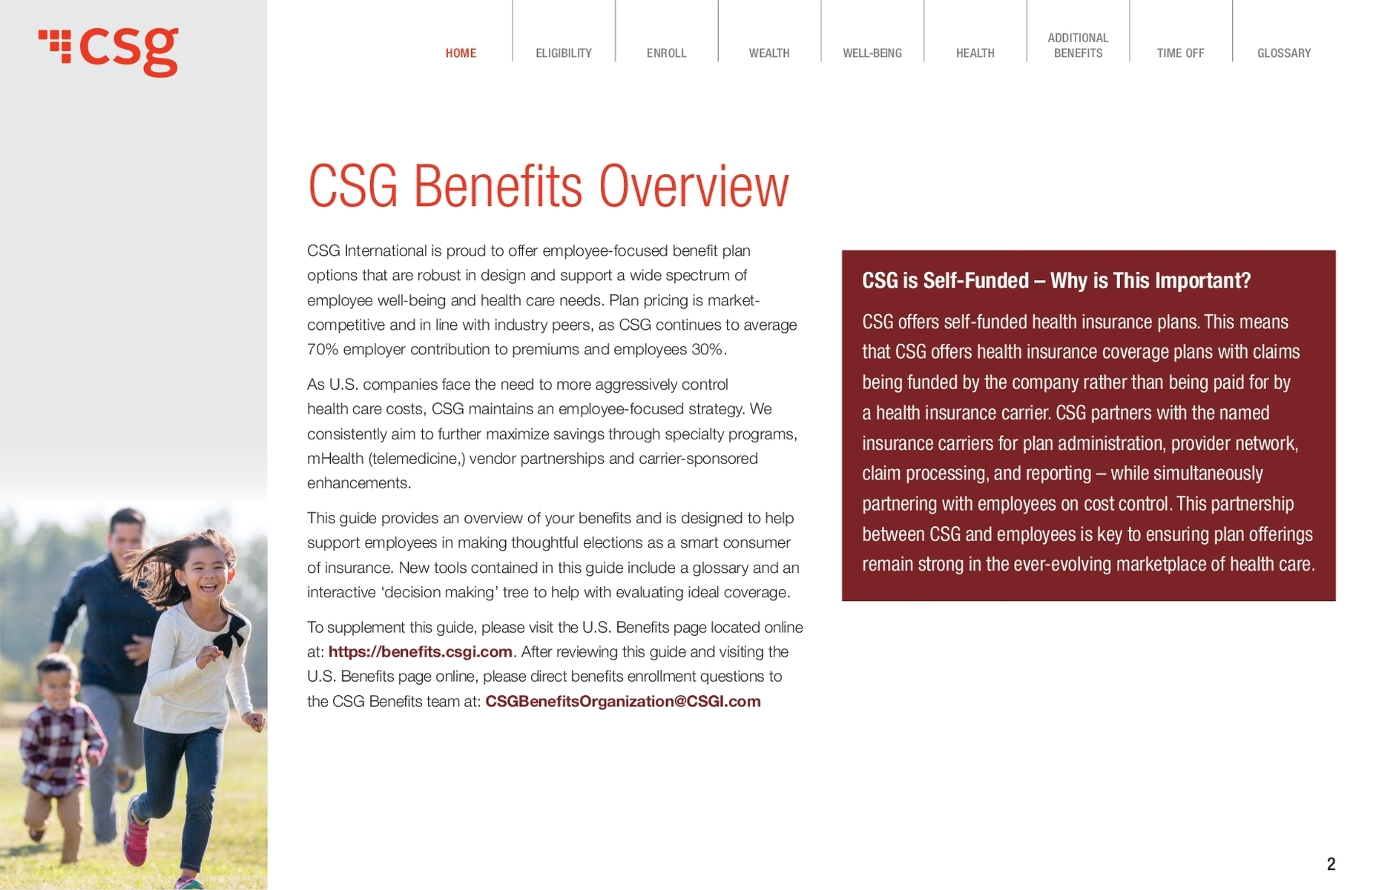 Insurance company CSG: feedback from employees and customers 58